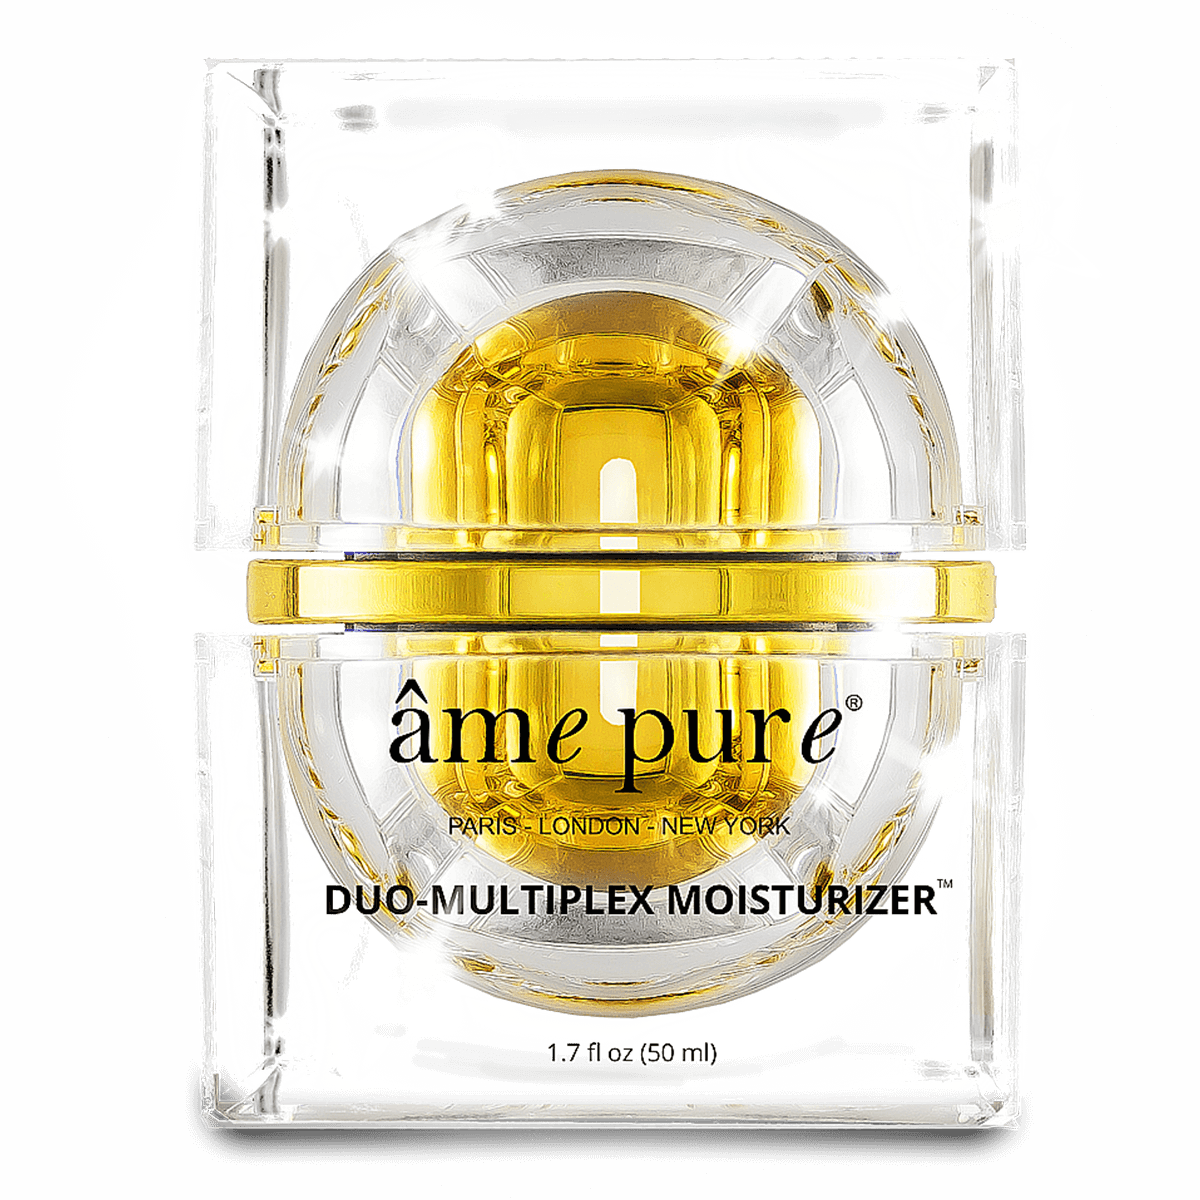 Moisturizer, face product, skin product, ame pure